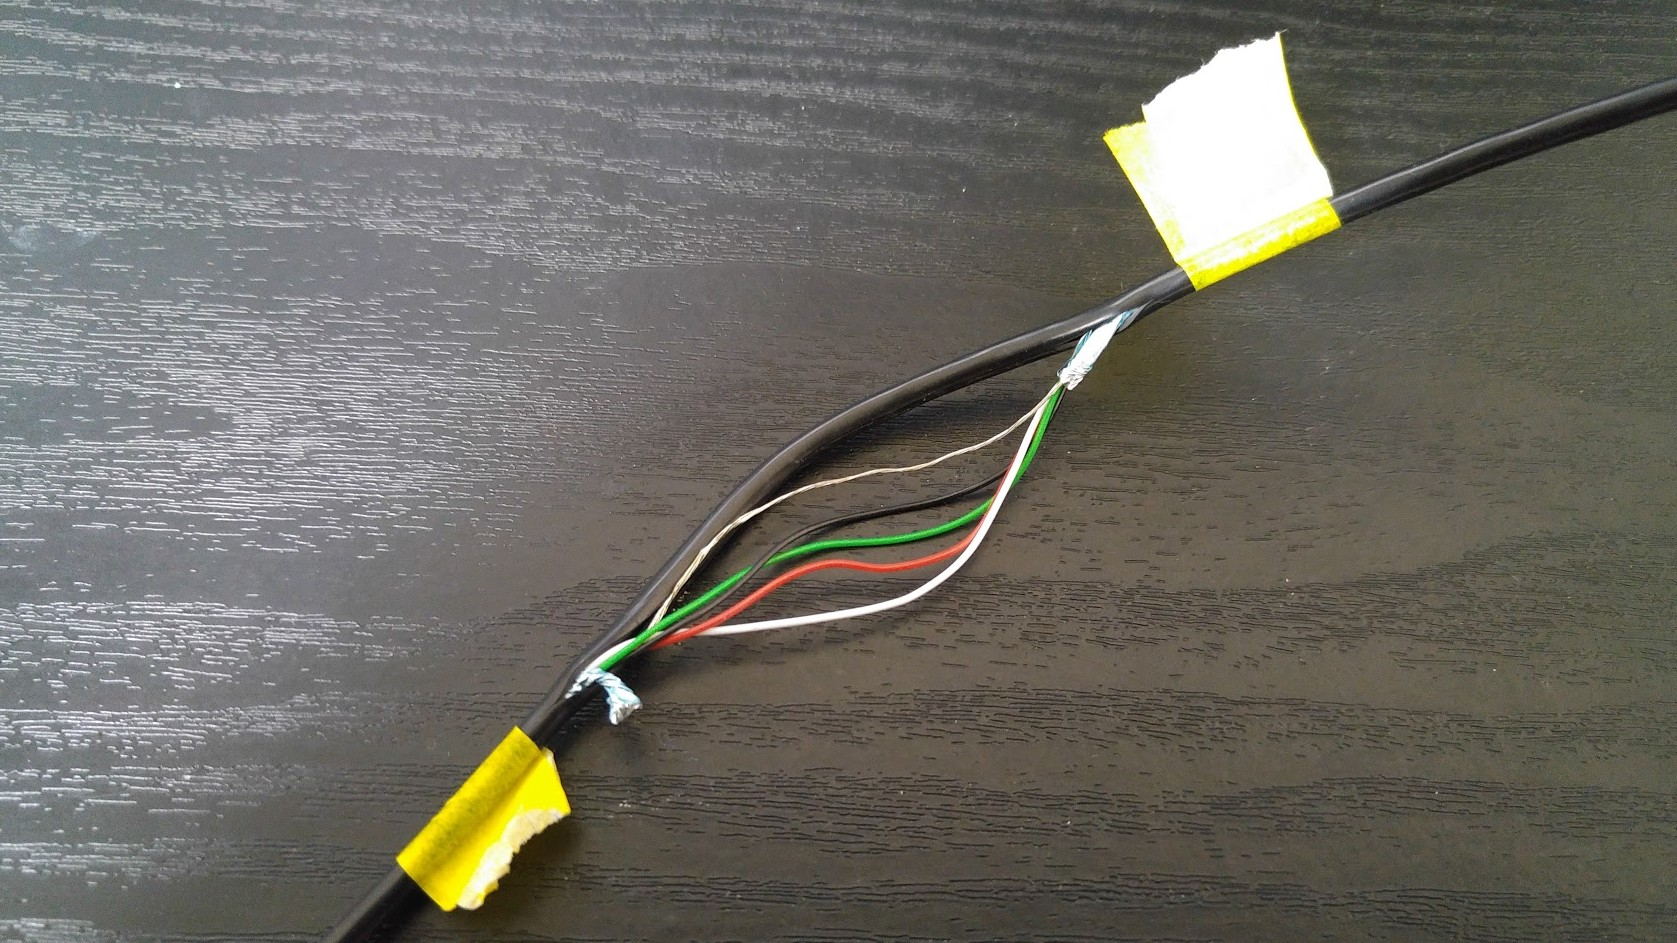 wio-node_grove-relay_usb-cable_iot-hack_6